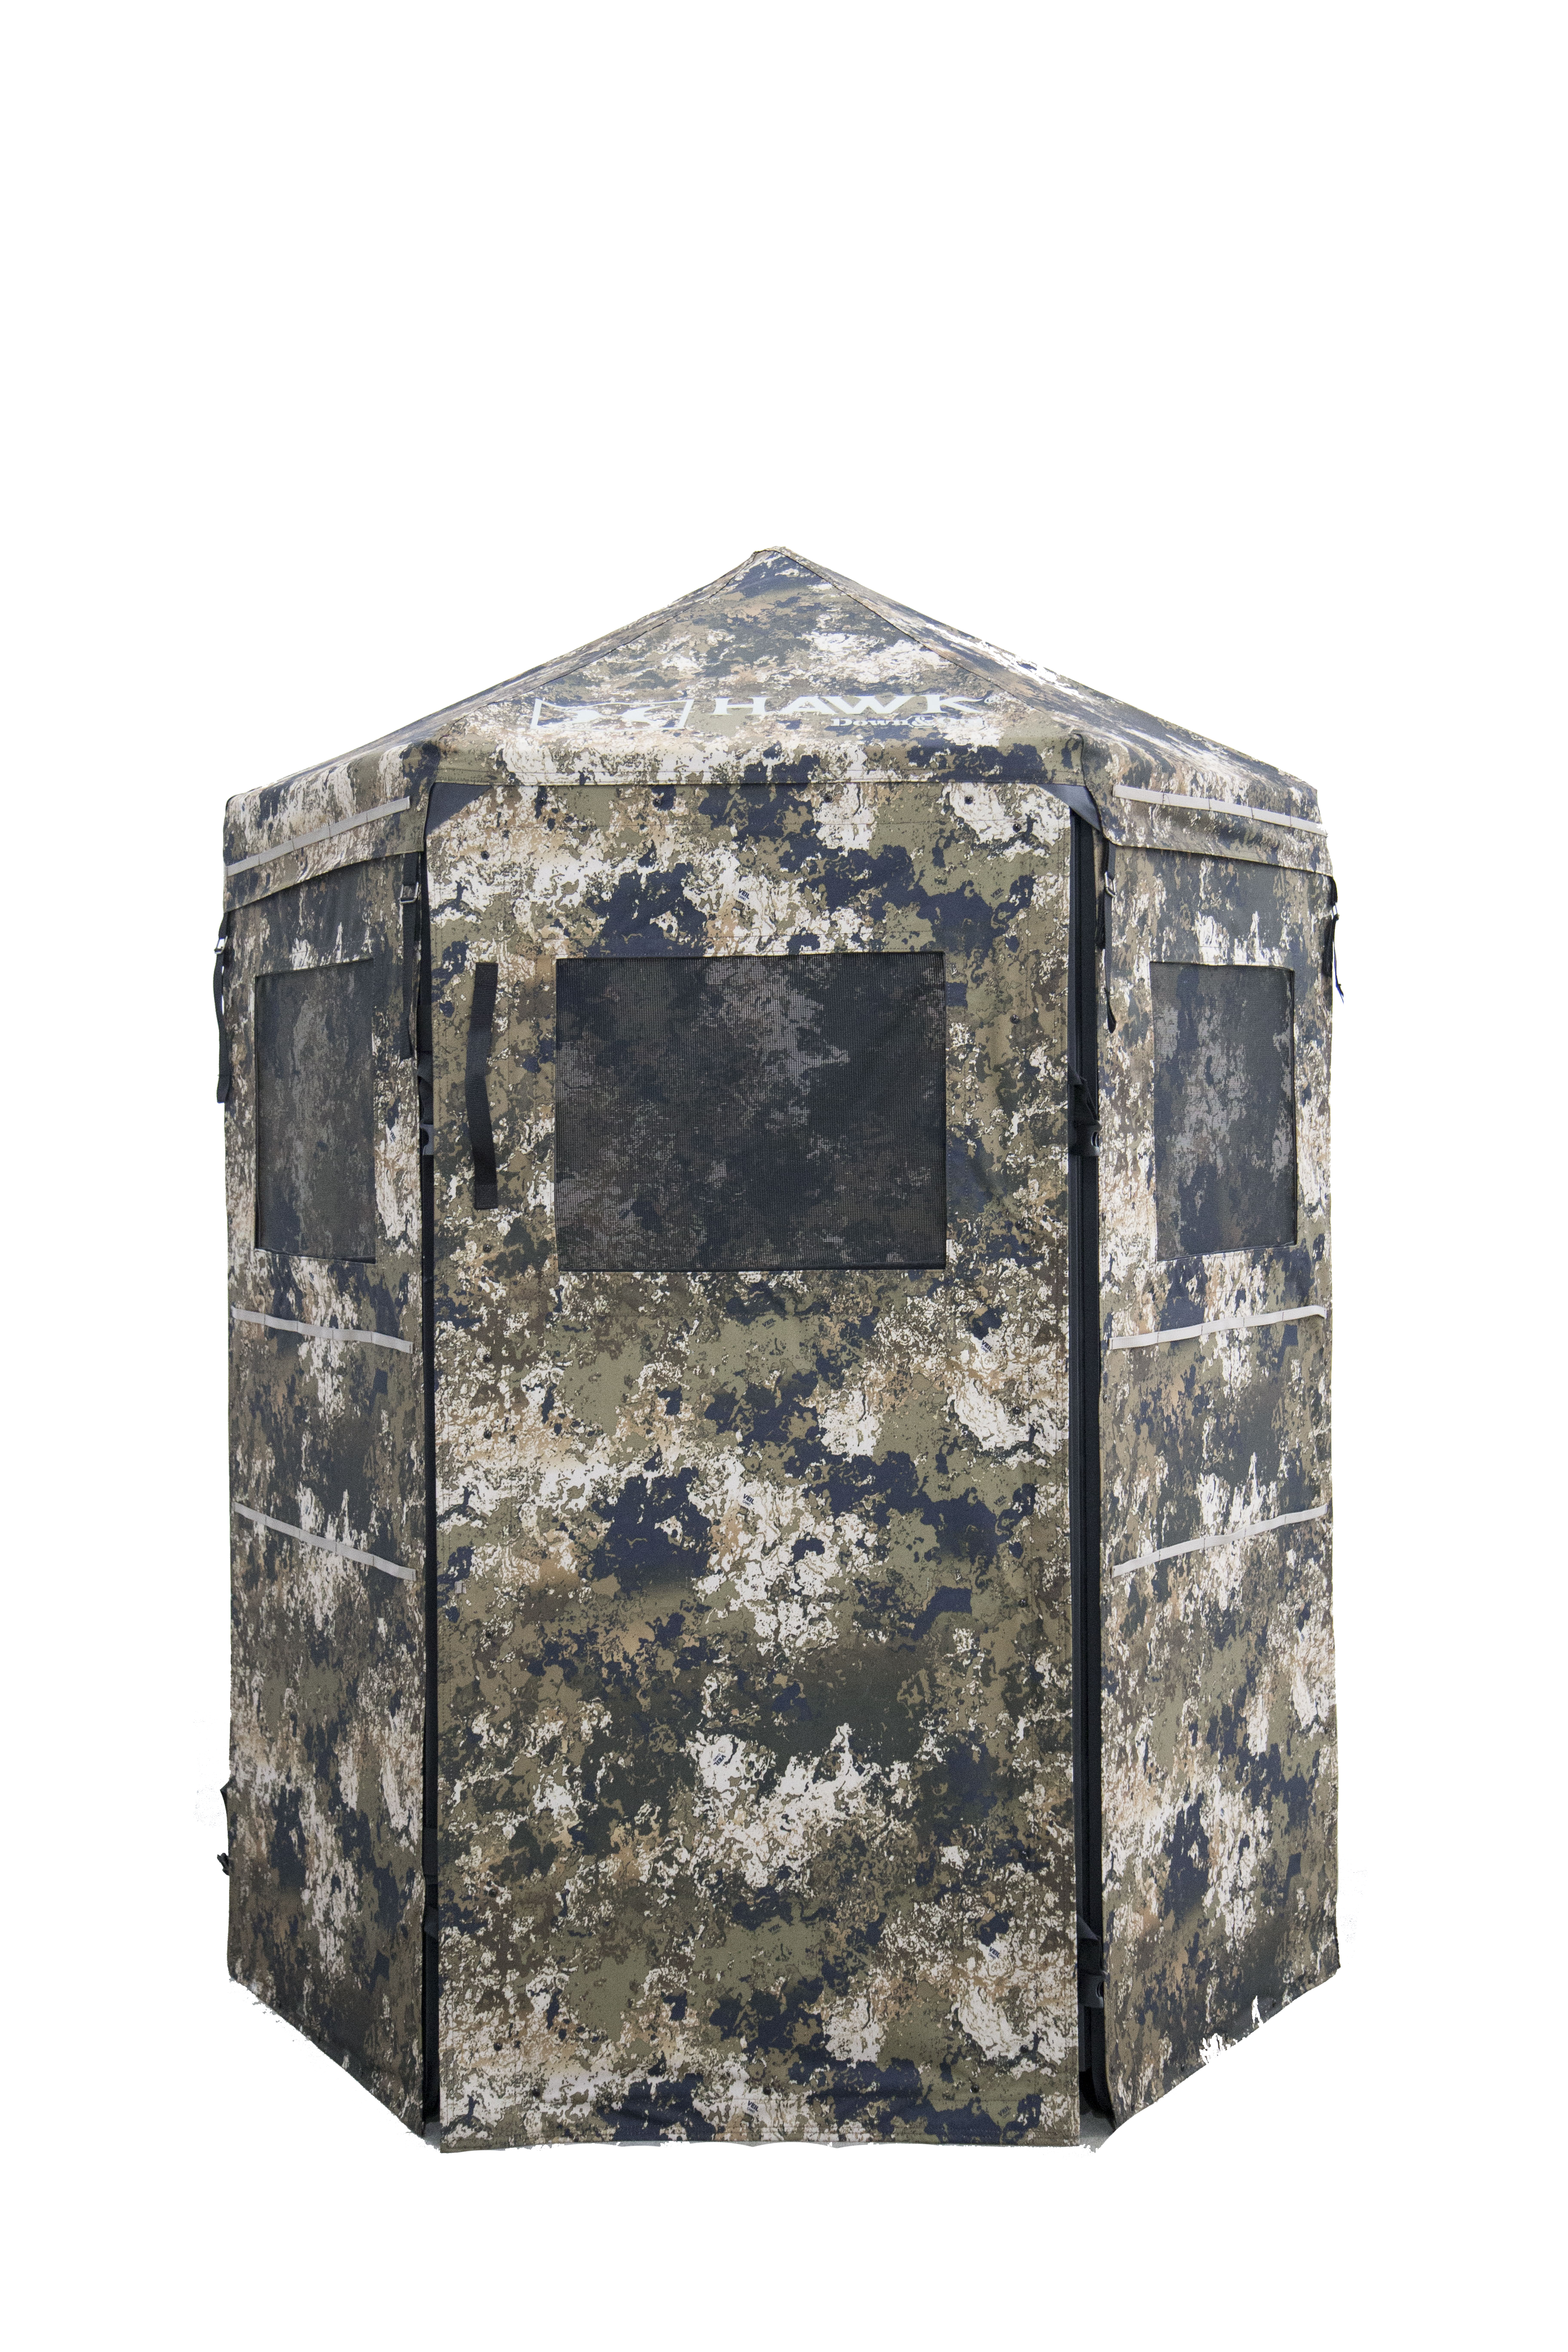 DOWN-N-OUT SCOUT PANEL BLIND by HAWK